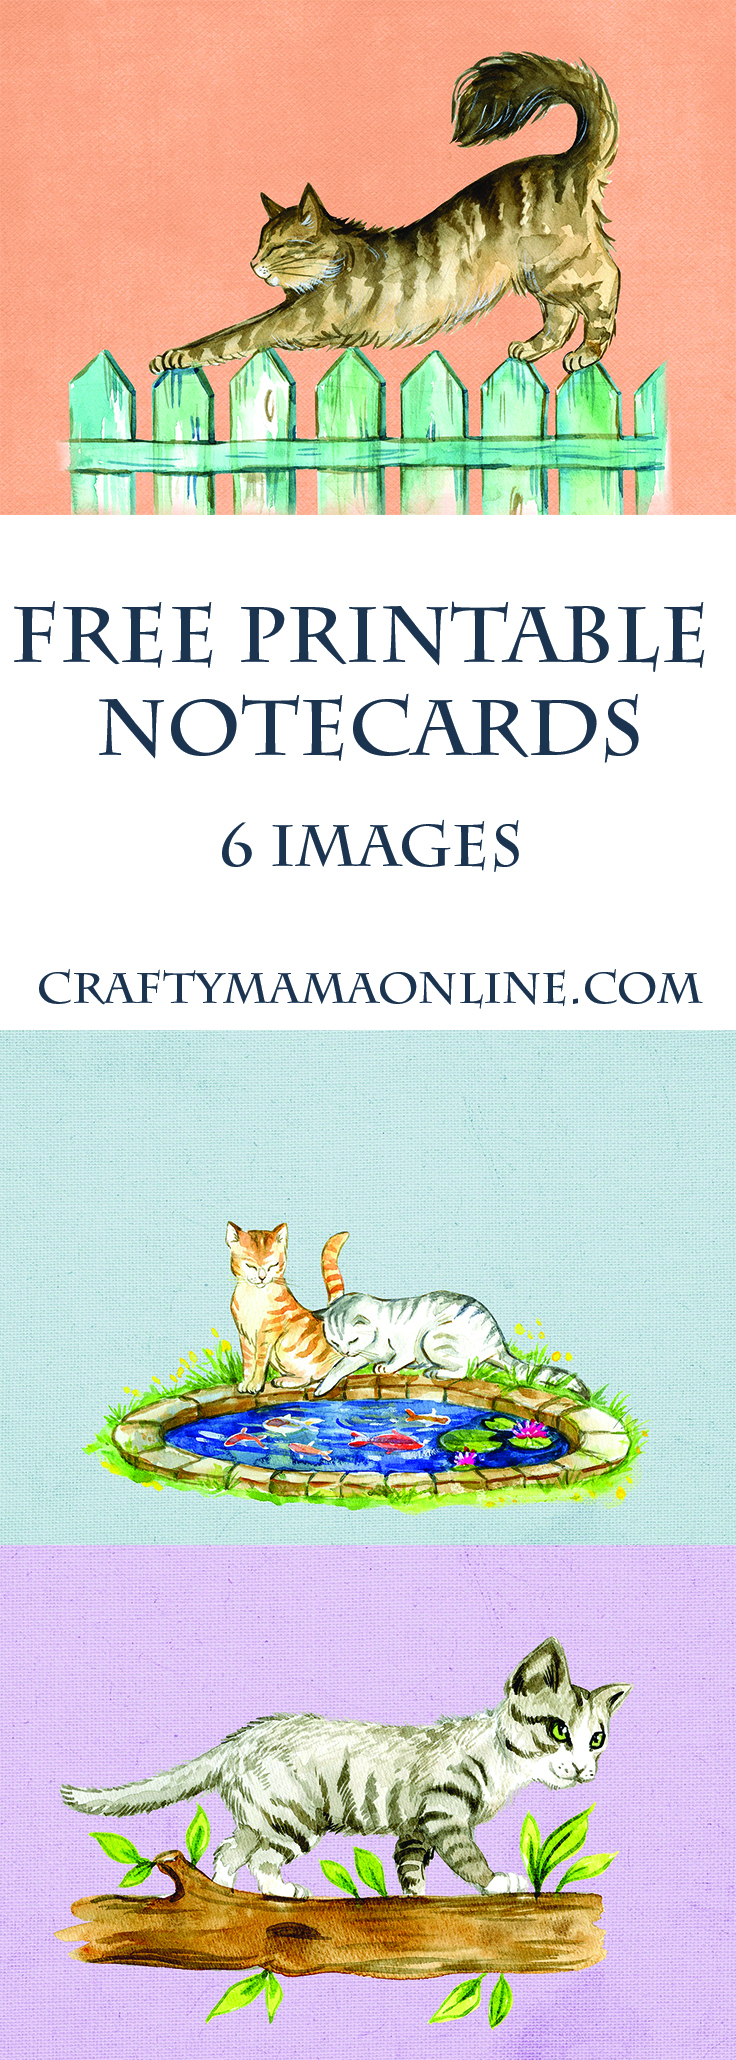 cat notecards pinterest.jpg